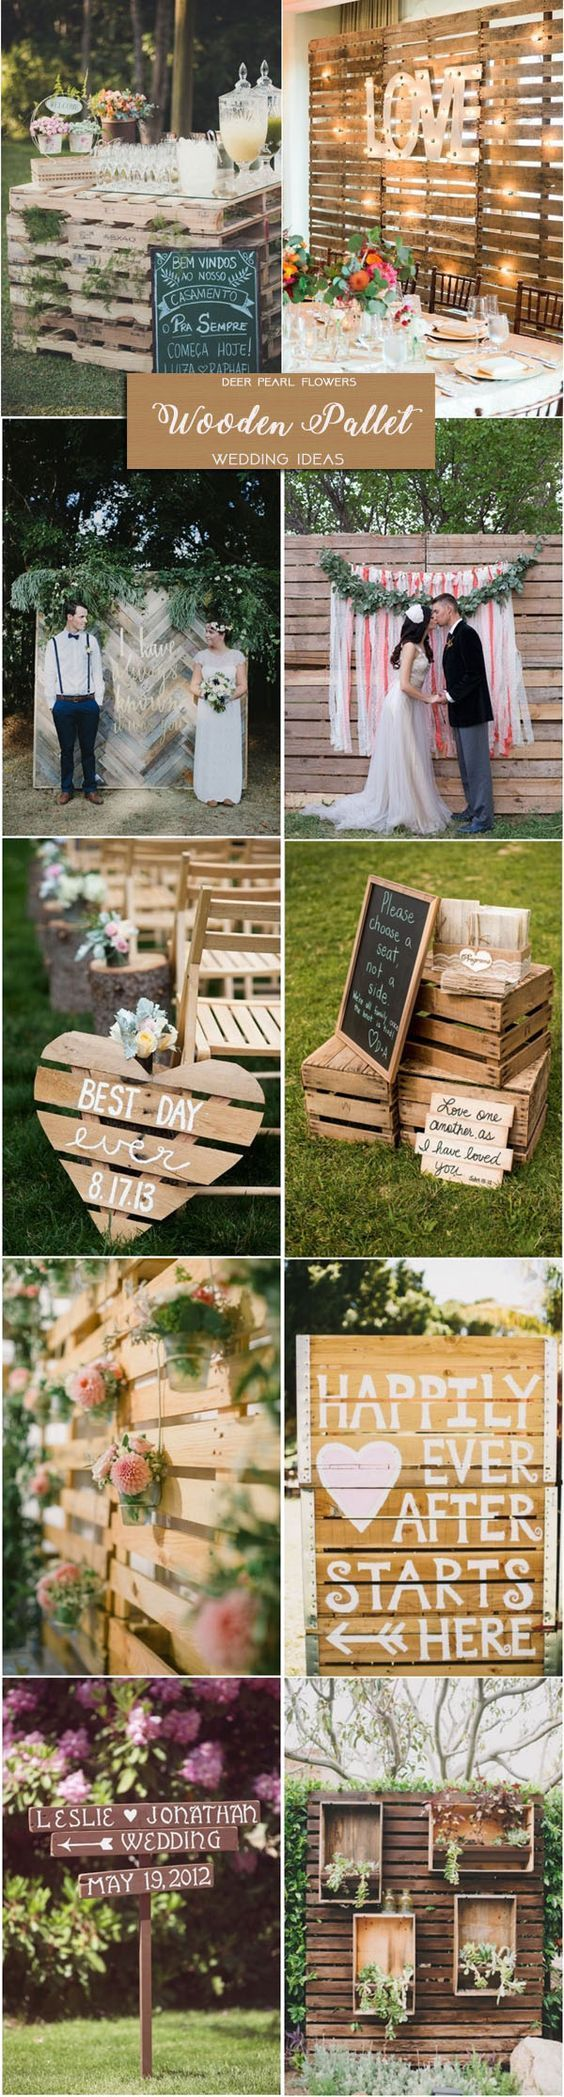 Rustic country wedding ideas wood pallets wedding decor ideas rustic country wedding ideas wood pallets wedding decor ideas httpwww junglespirit Image collections